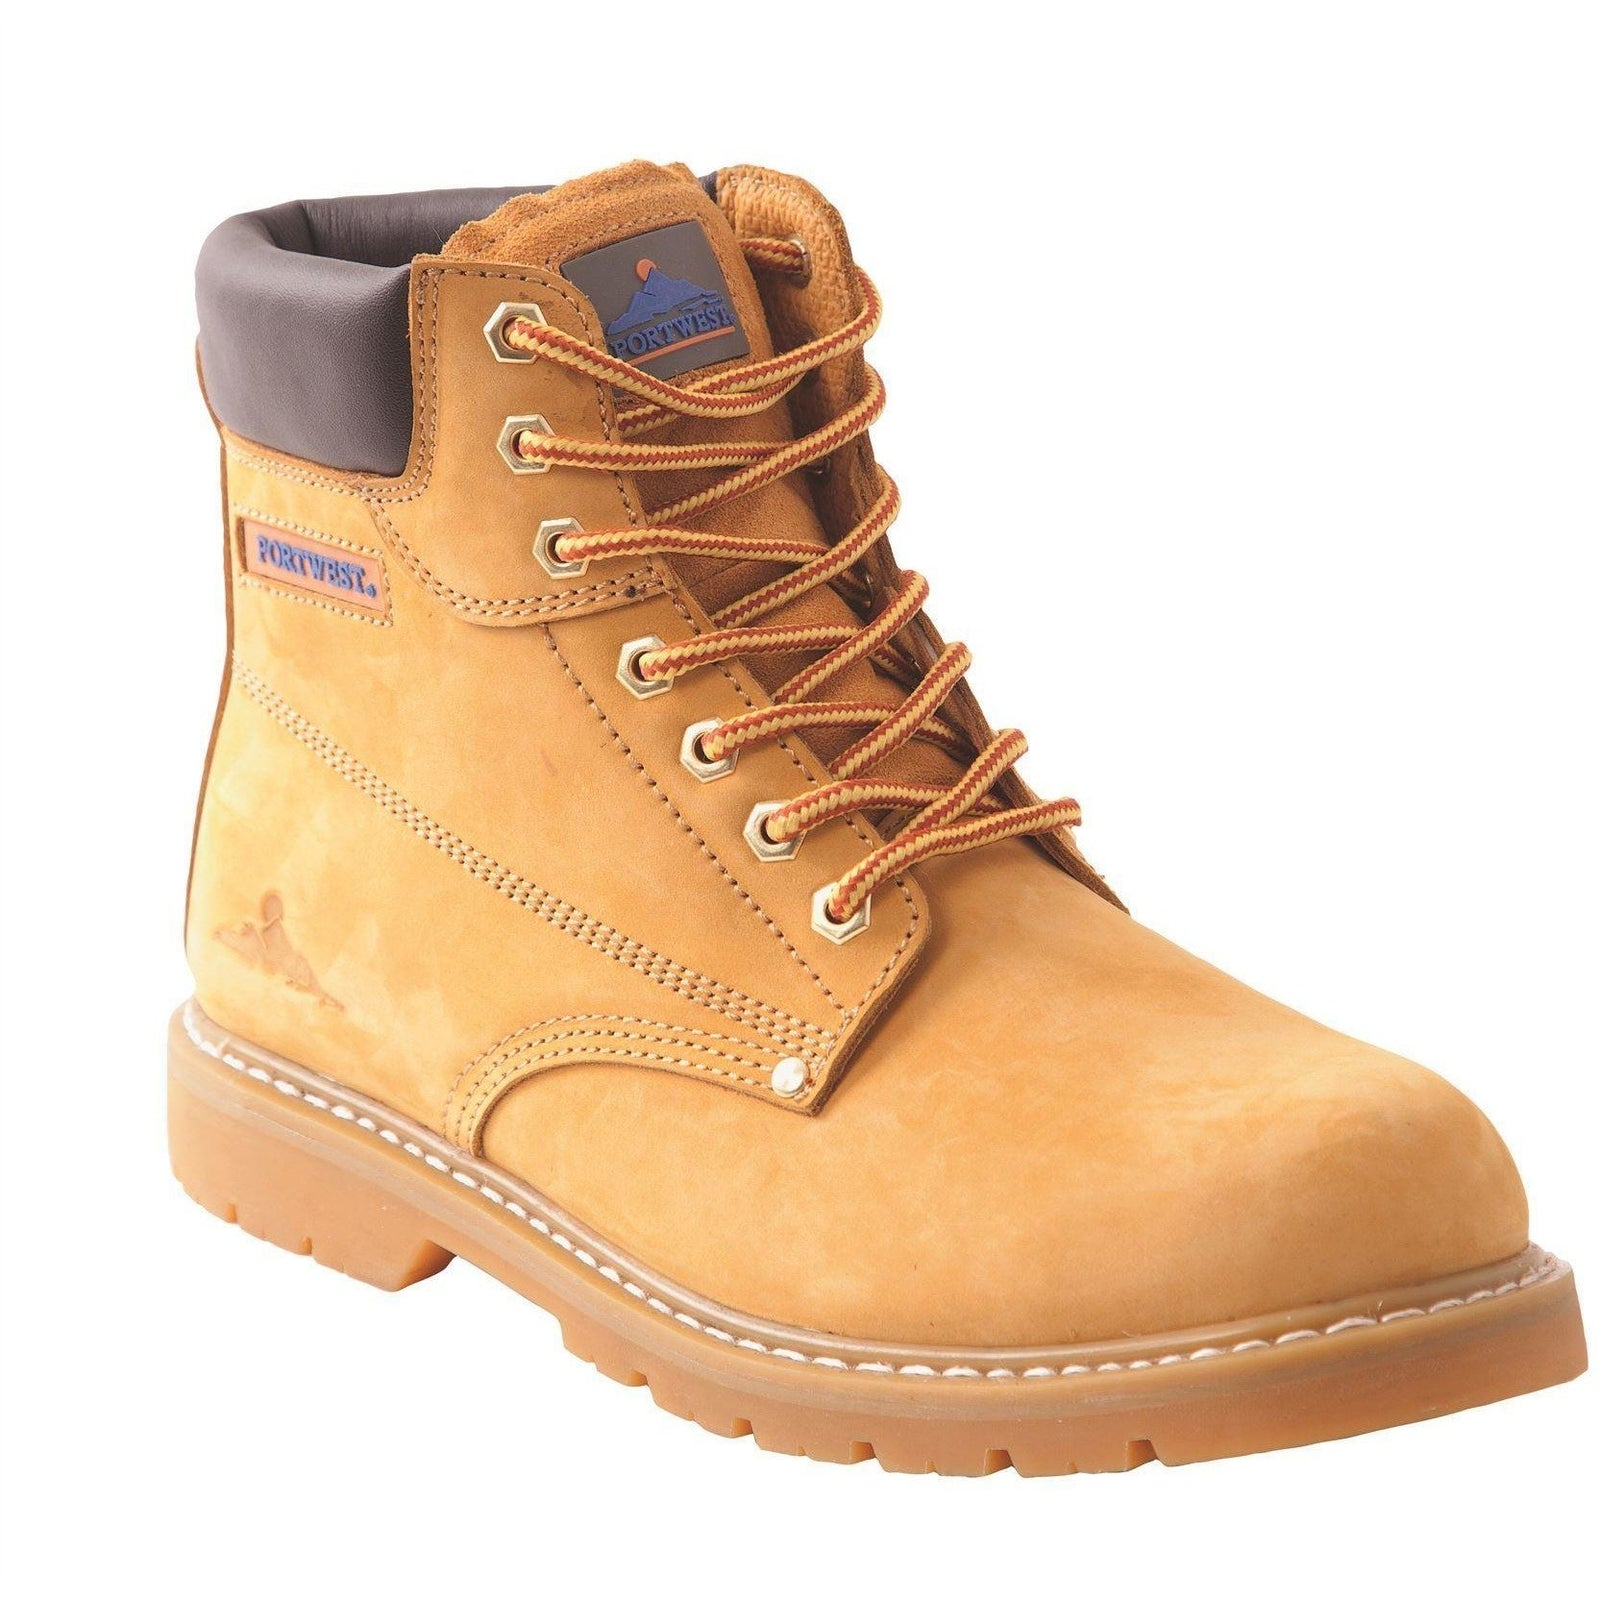 Portwest Goodyear Welted Boot OB FW18 - reid outdoors